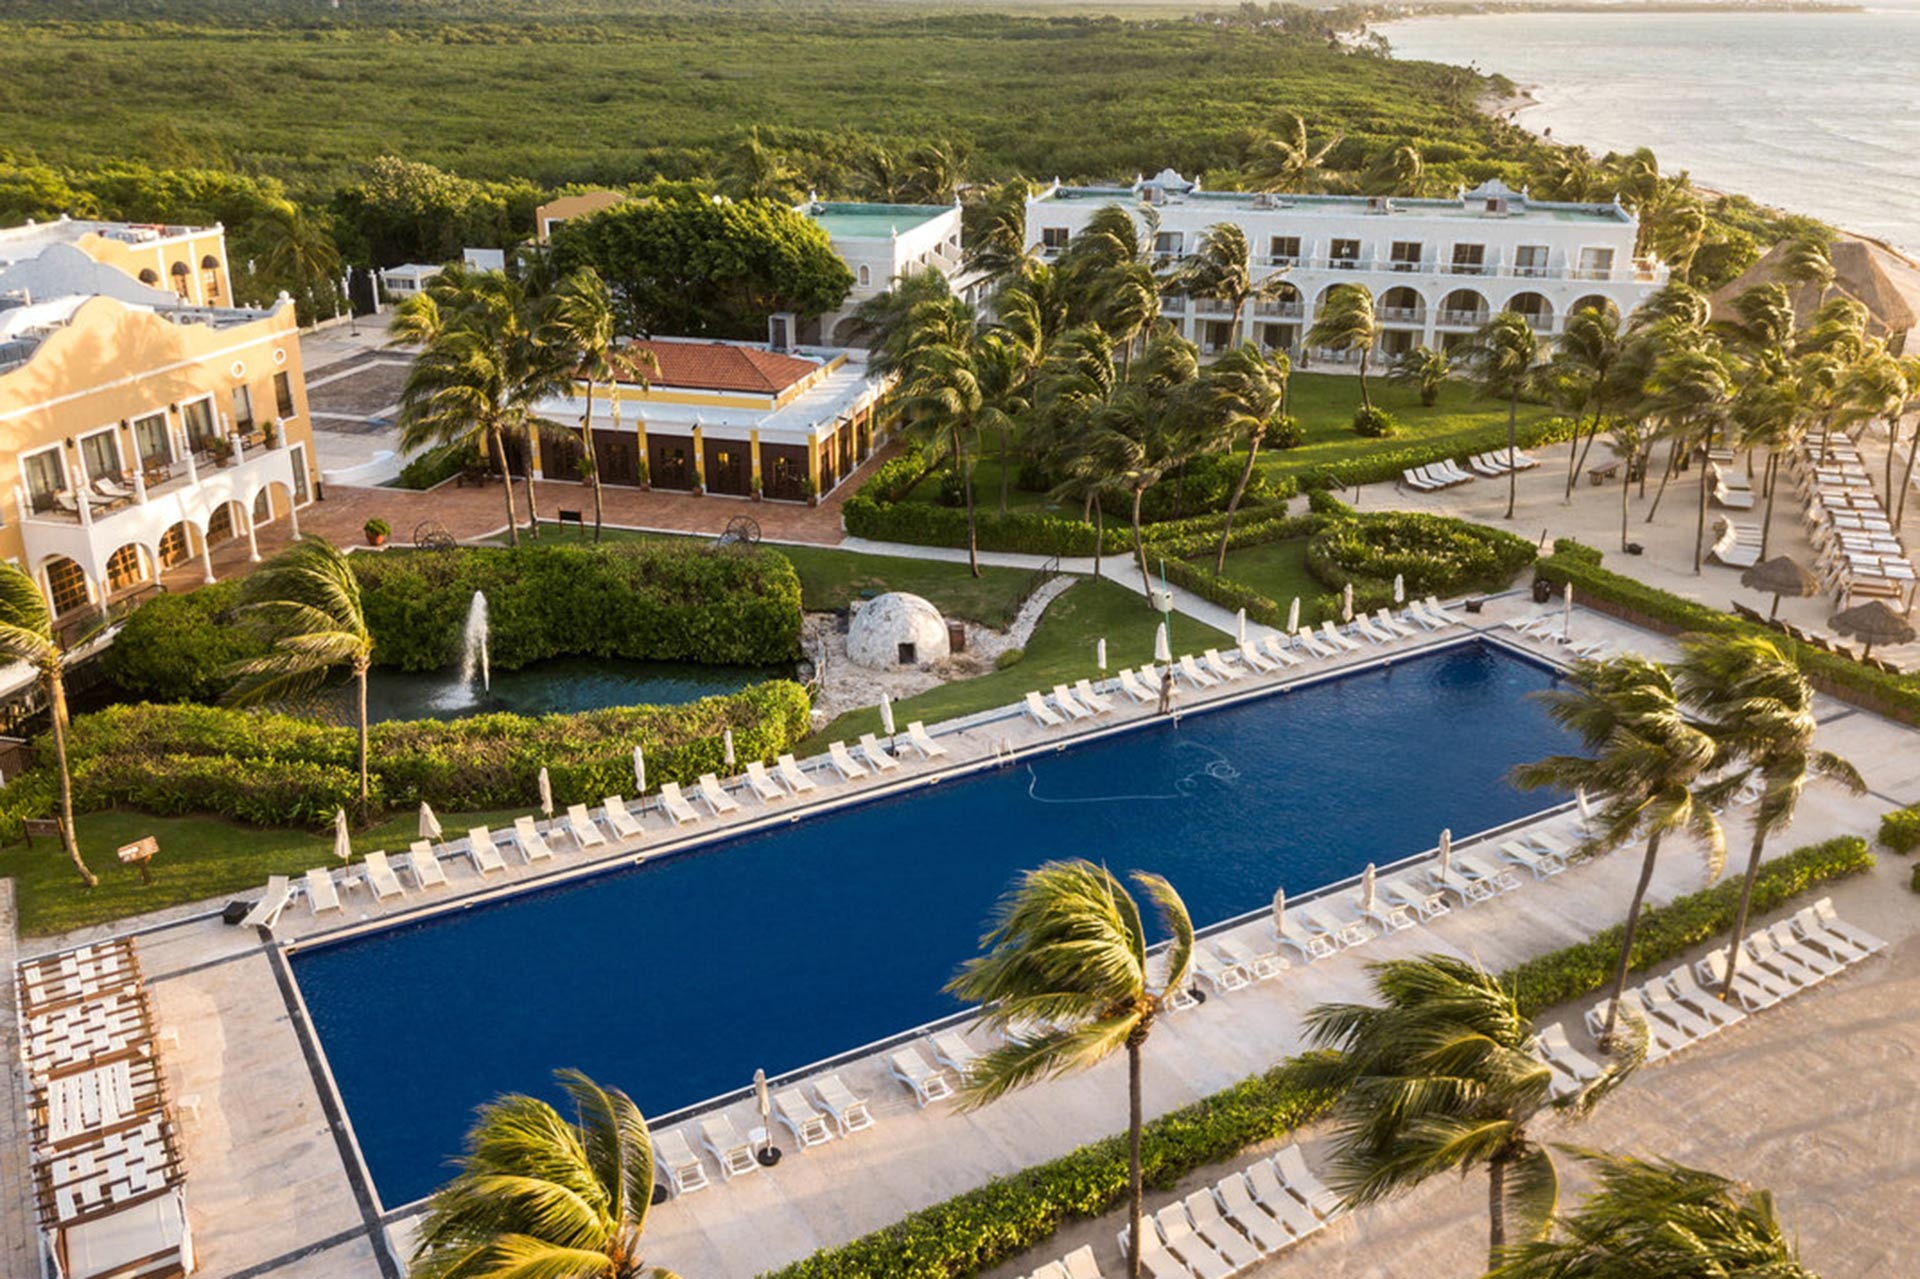 10 Best All Inclusive Family Resorts In Mexico For 2019